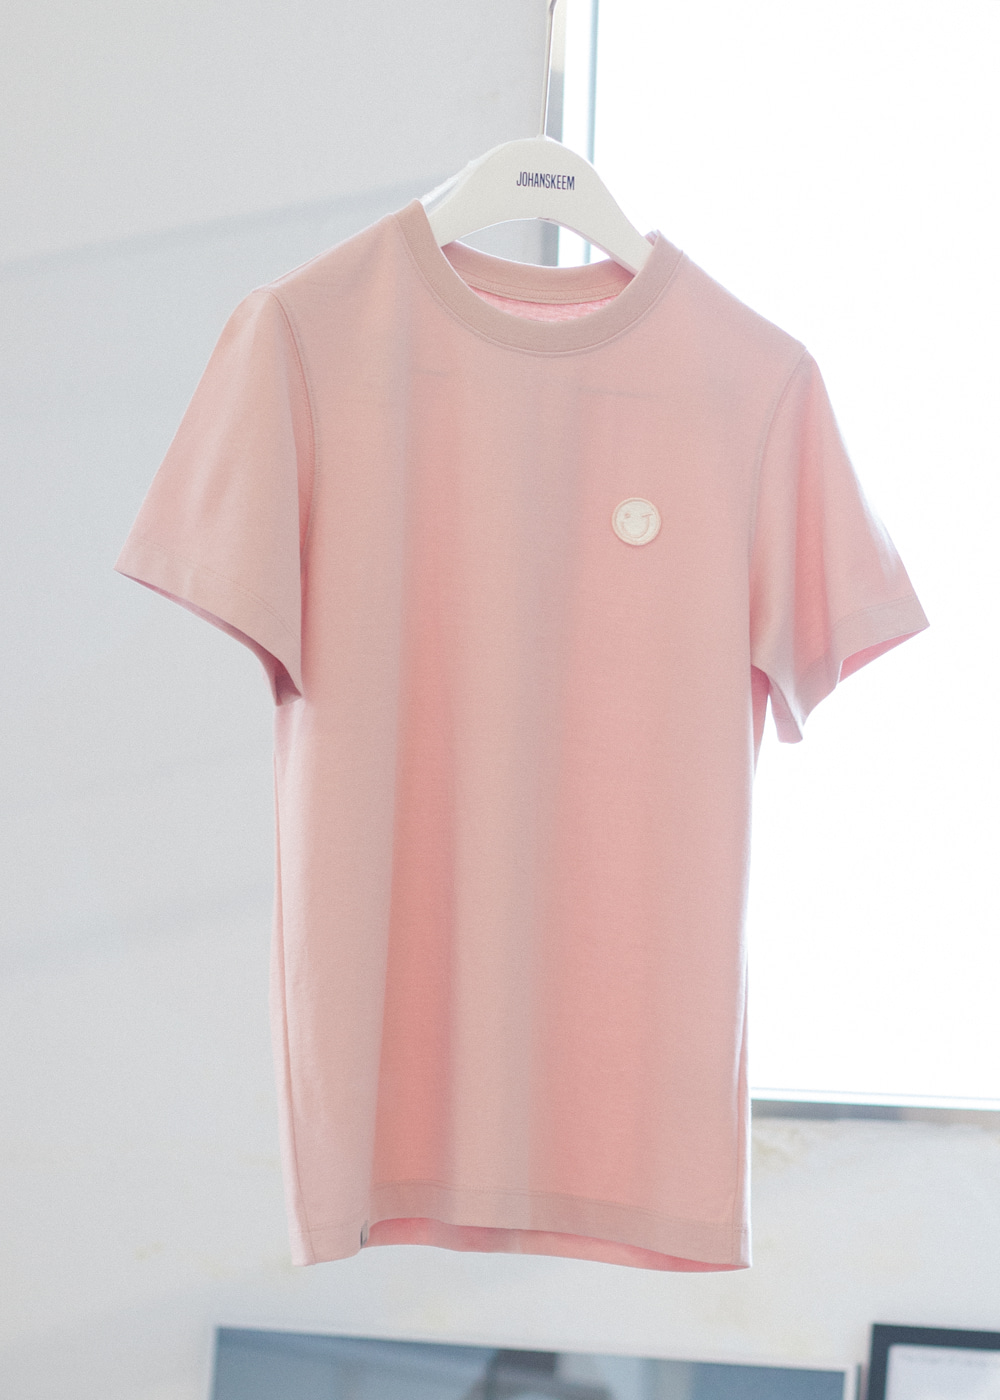 [Perfume of JOHANSKEEM] PINK SMILE EMBROIDERY T-SHIRT